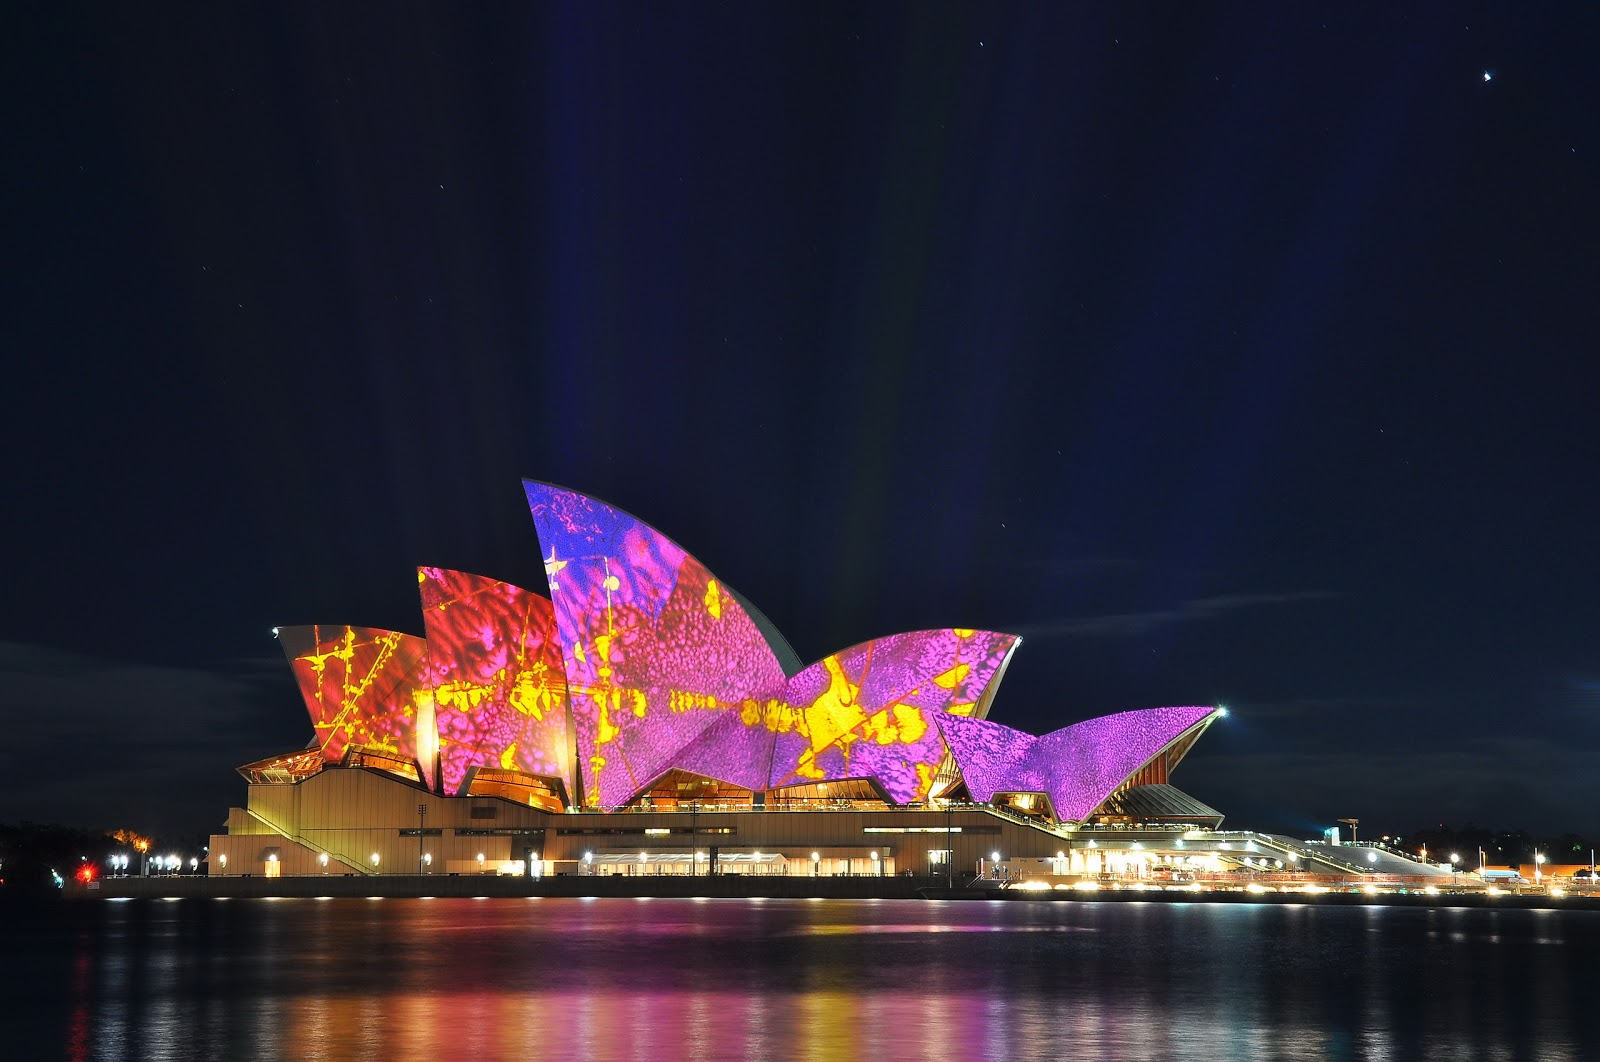 Travel trip journey opera house sydney australia for Sydney opera housse